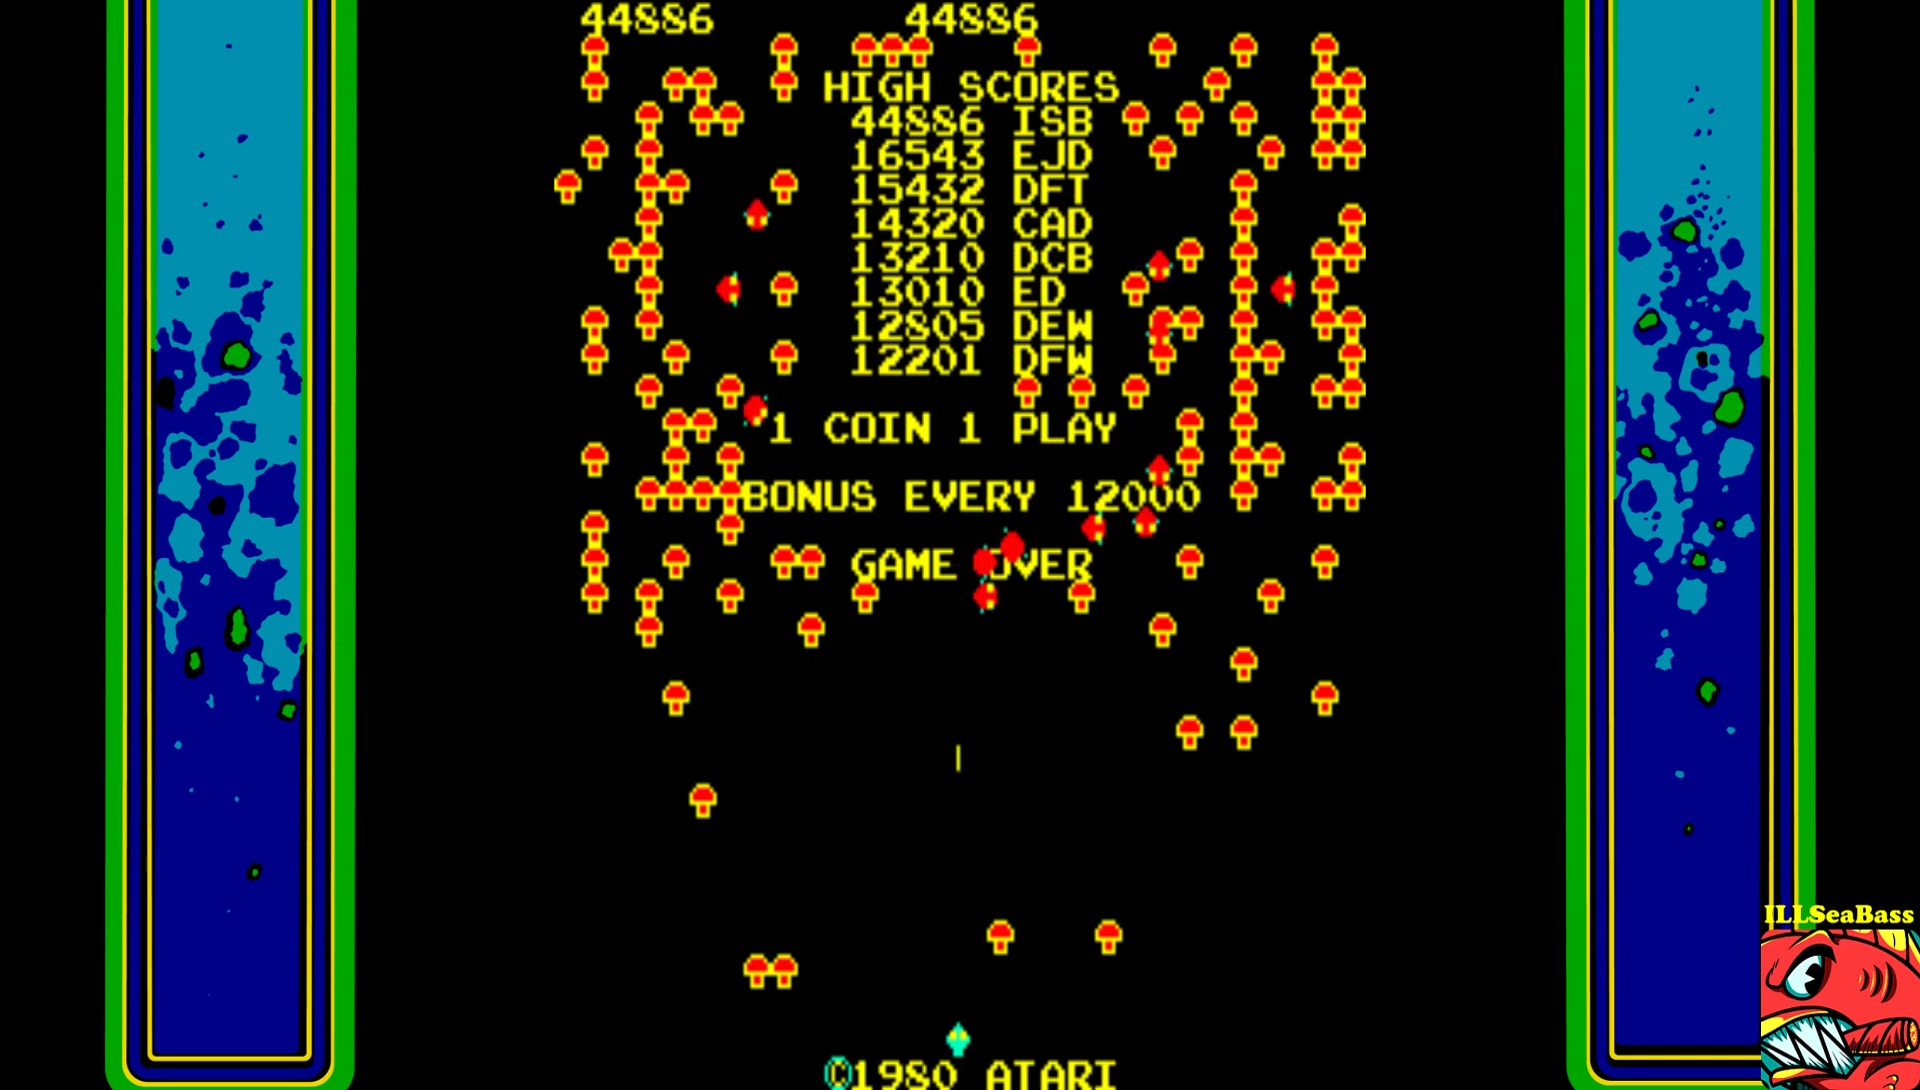 ILLSeaBass: Centipede (Arcade Emulated / M.A.M.E.) 44,886 points on 2017-07-15 23:17:21